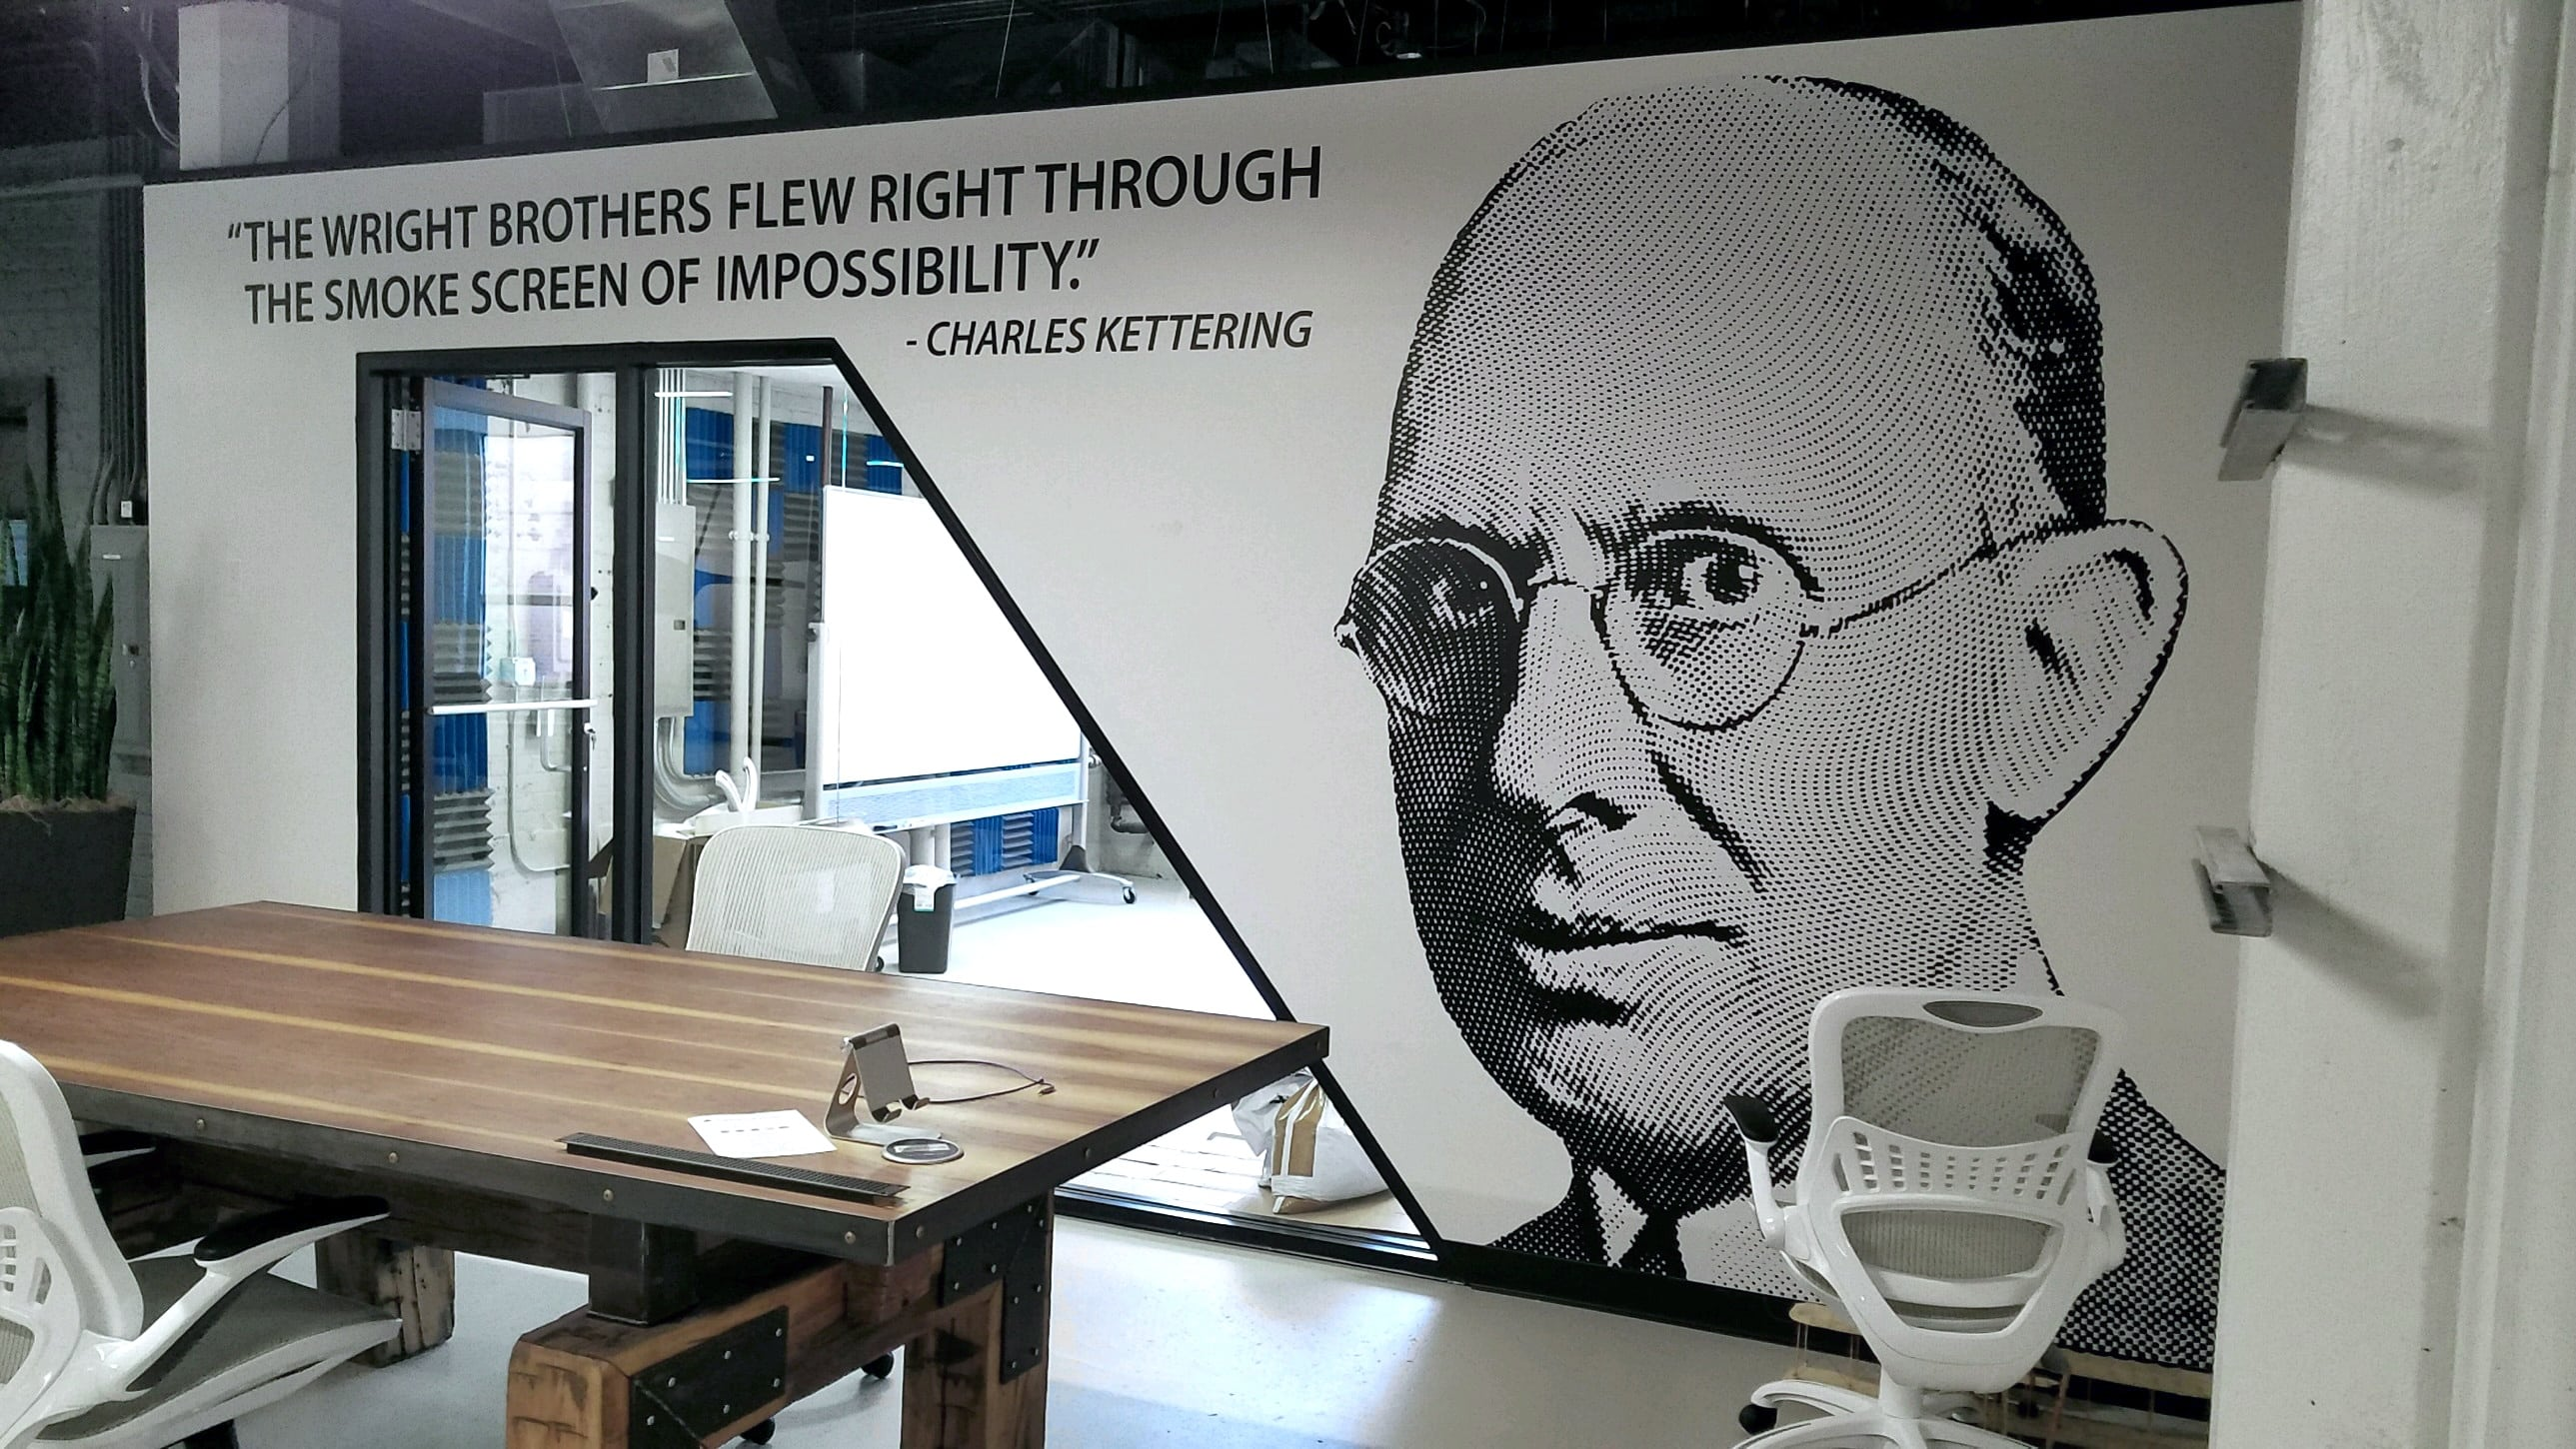 WRIGHT BROTHERS INSTITUTE WALL MURAL